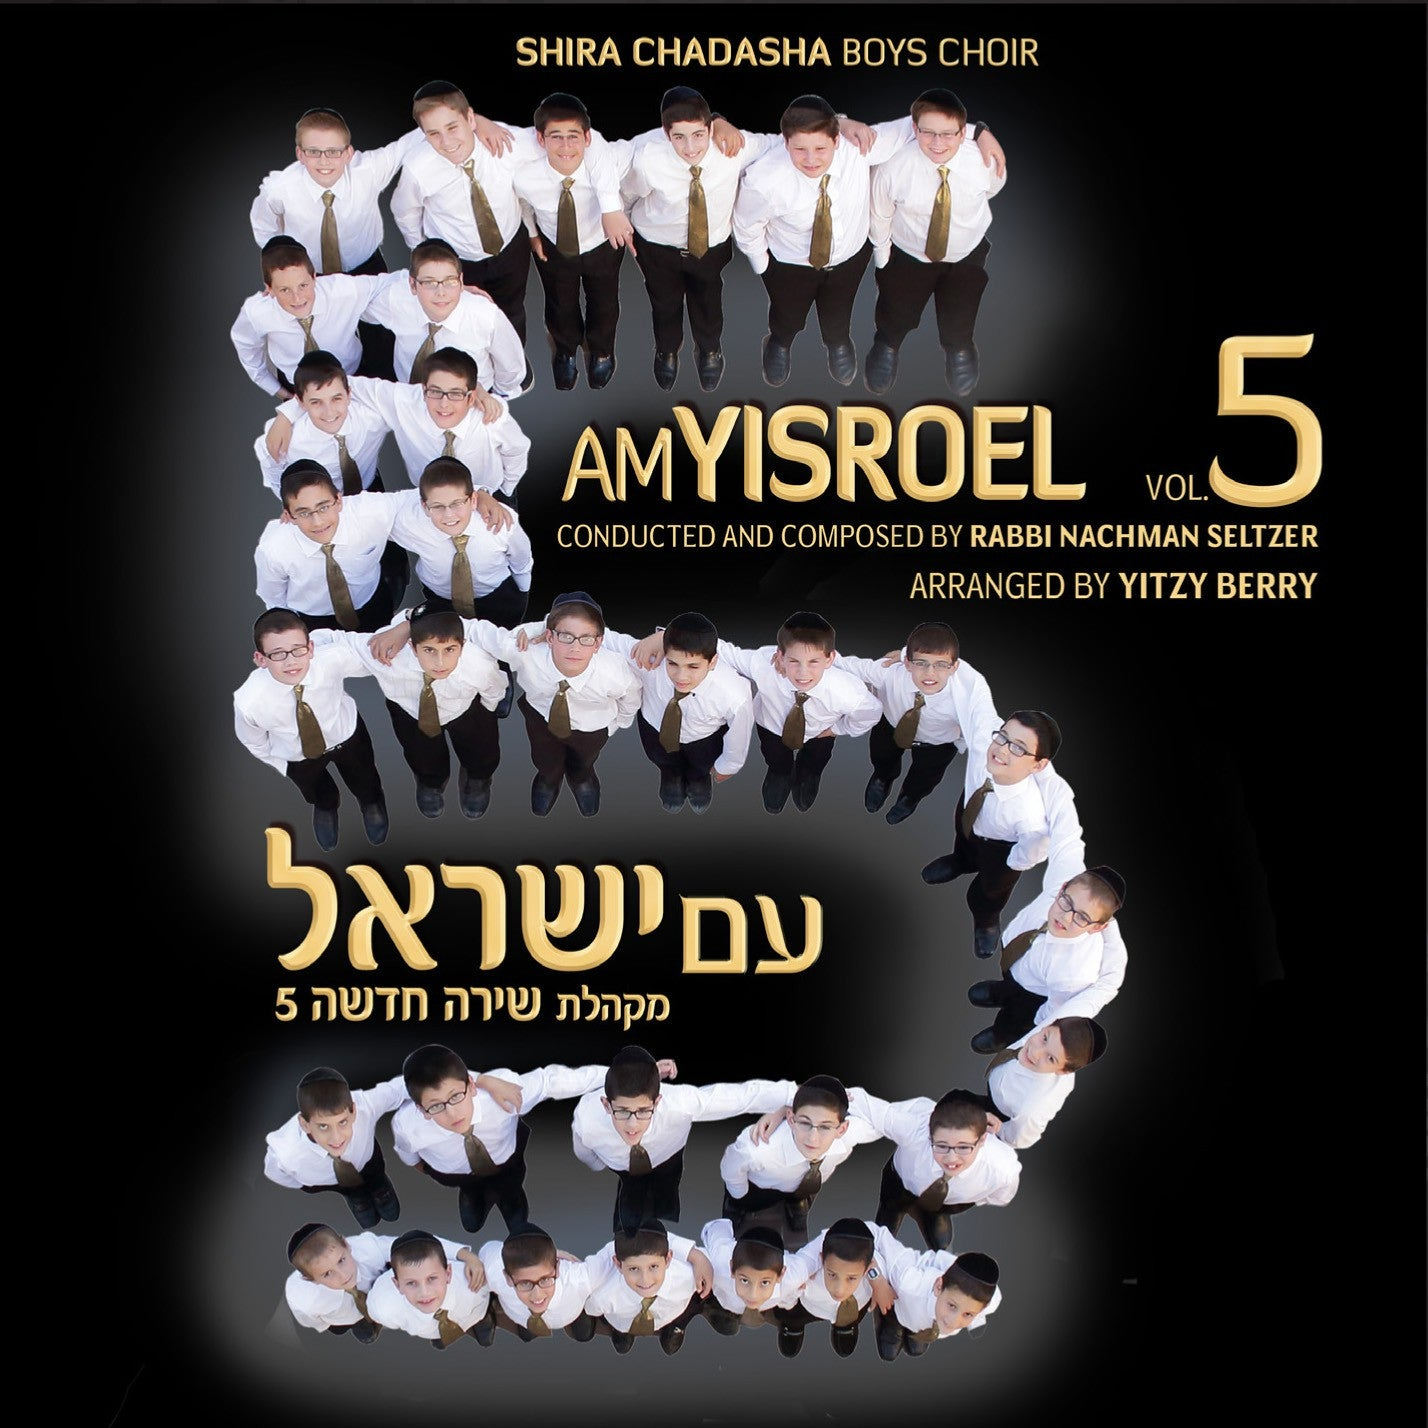 Shira Chadasha Boys Choir - Am Yisroel